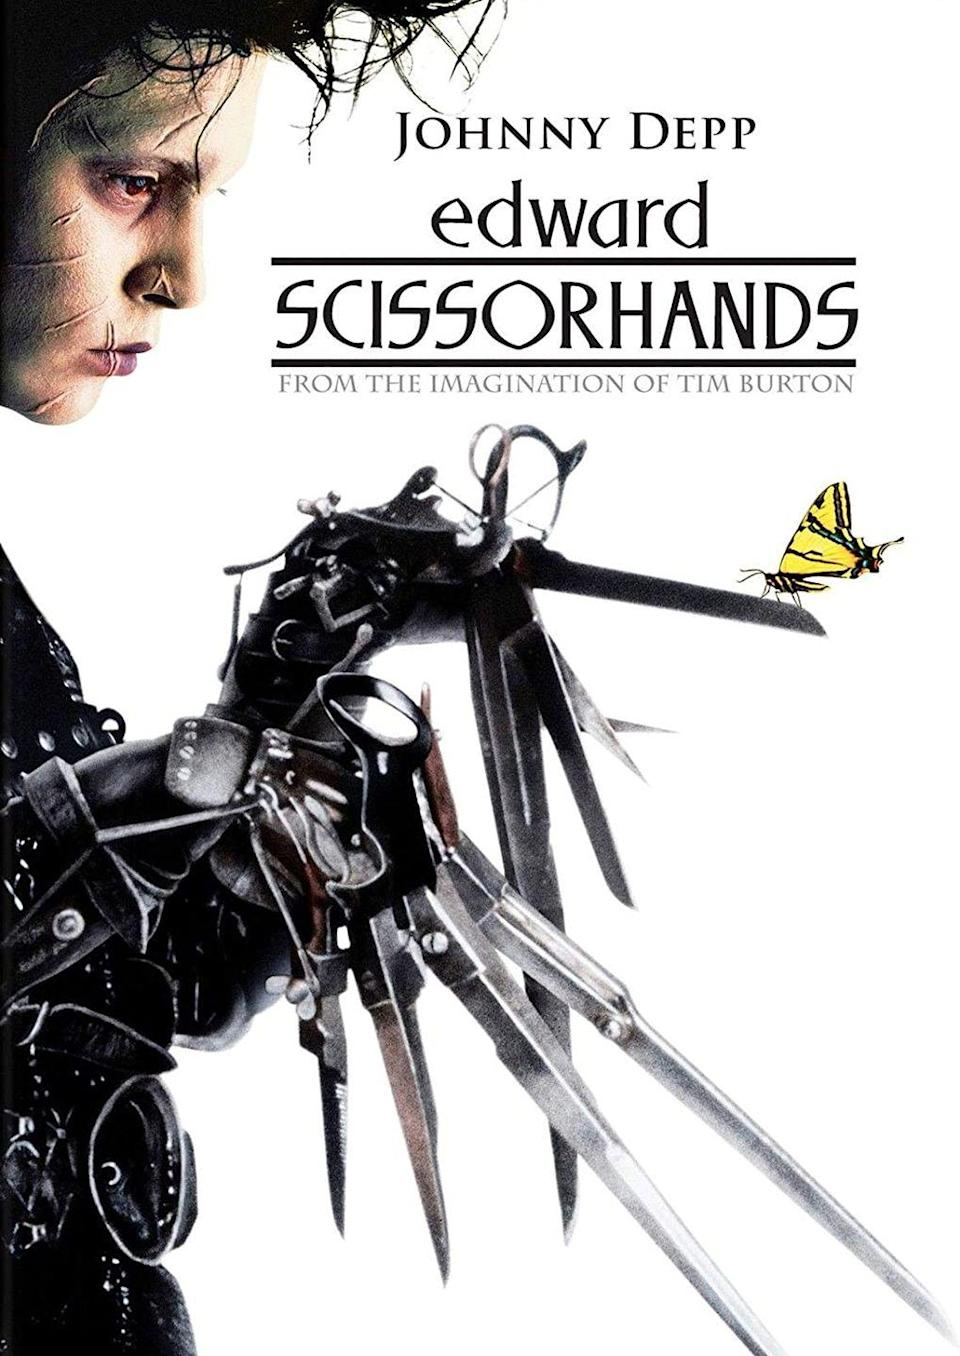 <p><strong>Where did the ice in the attic come from? </strong></p><p>Edward Scissorhands (Johnny Depp) lived alone in an enormous house in the hills with scissors as hands and no help from anyone else. It's nearly impossible to live with scissors as hands, let alone carve <em>giant</em> blocks of ice in the highest room of a mansion. </p><p>As an aged Kim (Winona Ryder) is talking to her granddaughter about Edward, the scene cuts to Edward sculpting beautiful ice sculptures in the attic of the isolated home that he lives in. Ahem, but where did the ice come from, and how was it able to stay frozen? Answers, please, Tim Burton.</p>